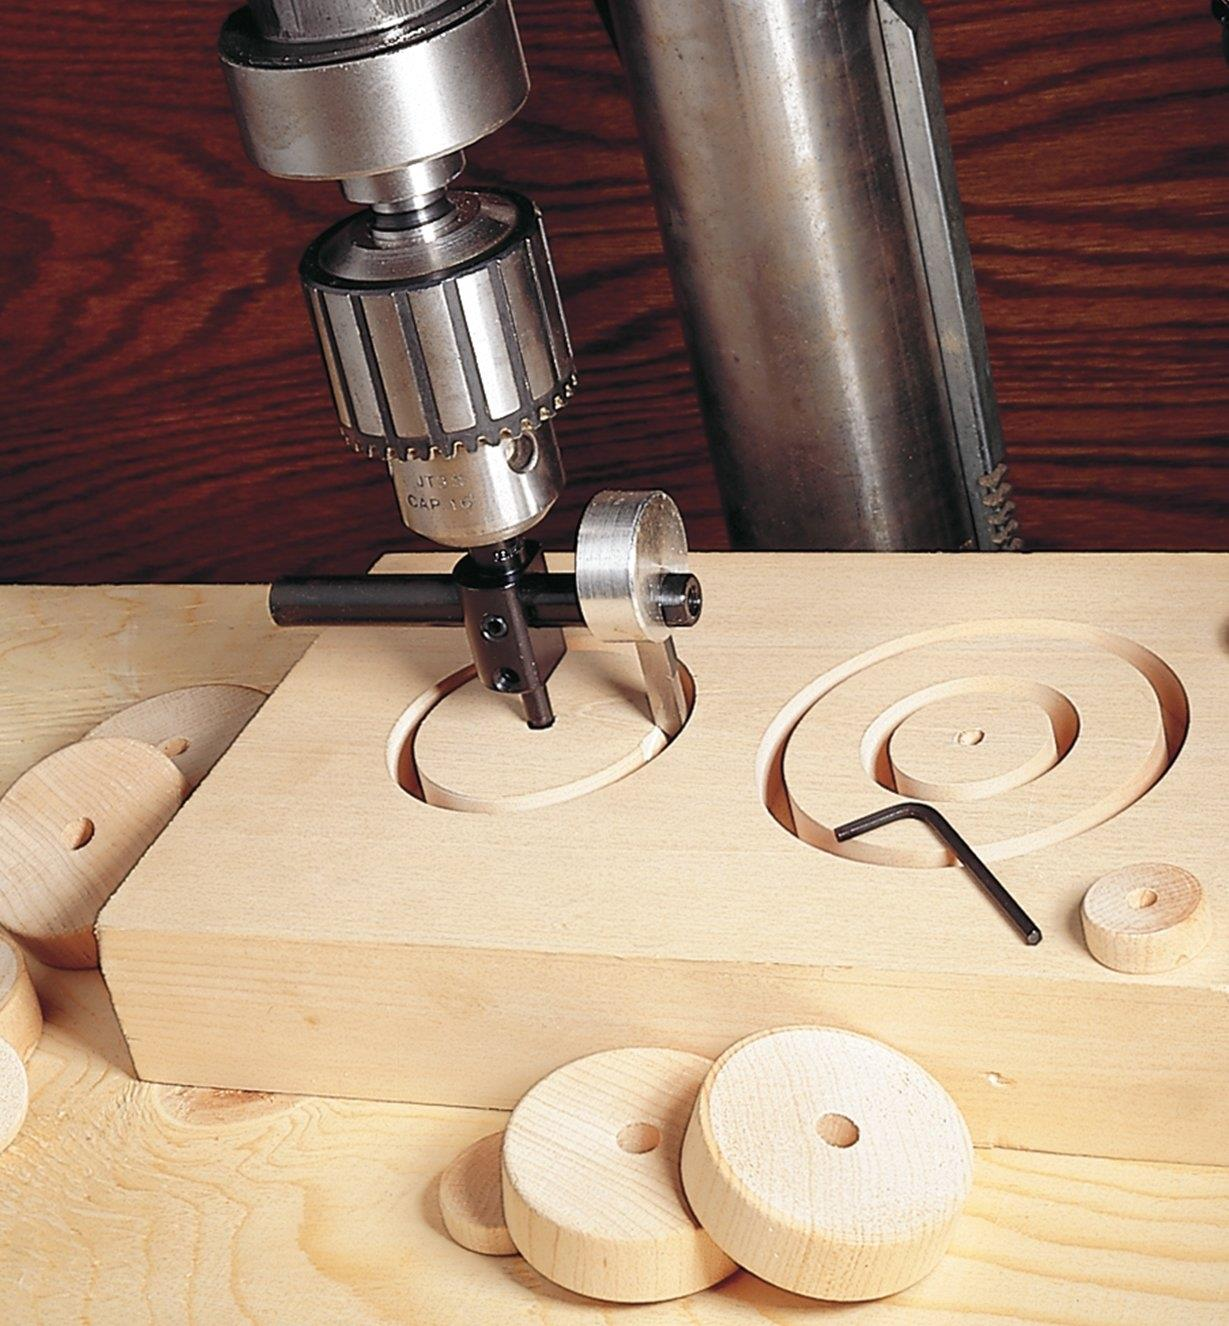 99K0901 - Wheel and Circle Cutter